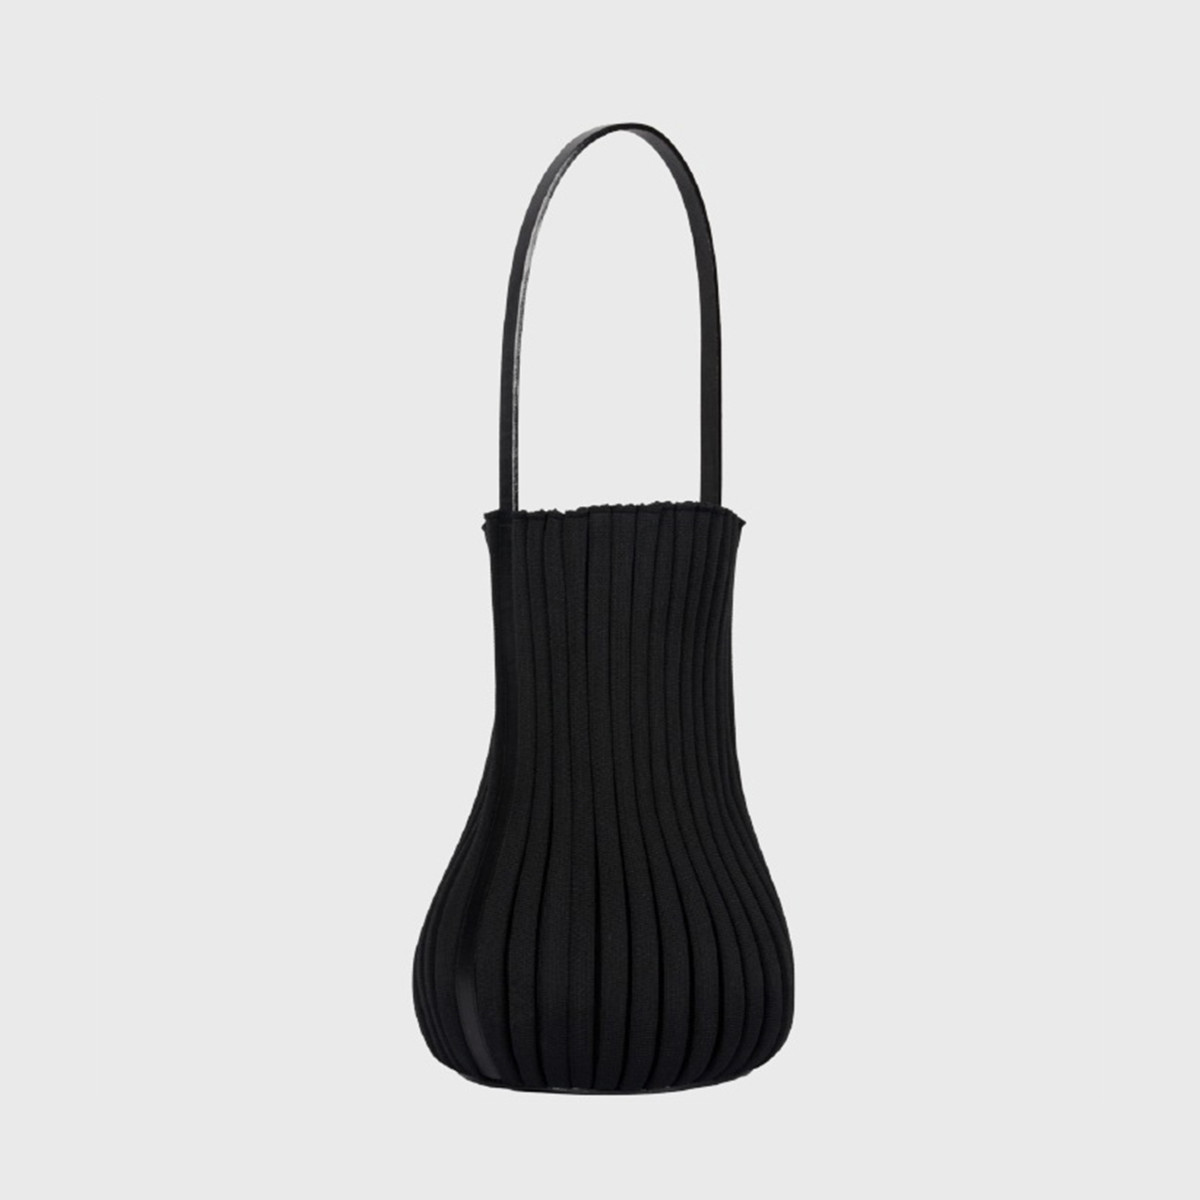 Hoi Bo Exhale Supernova Shoulder Tote, $184, available here.